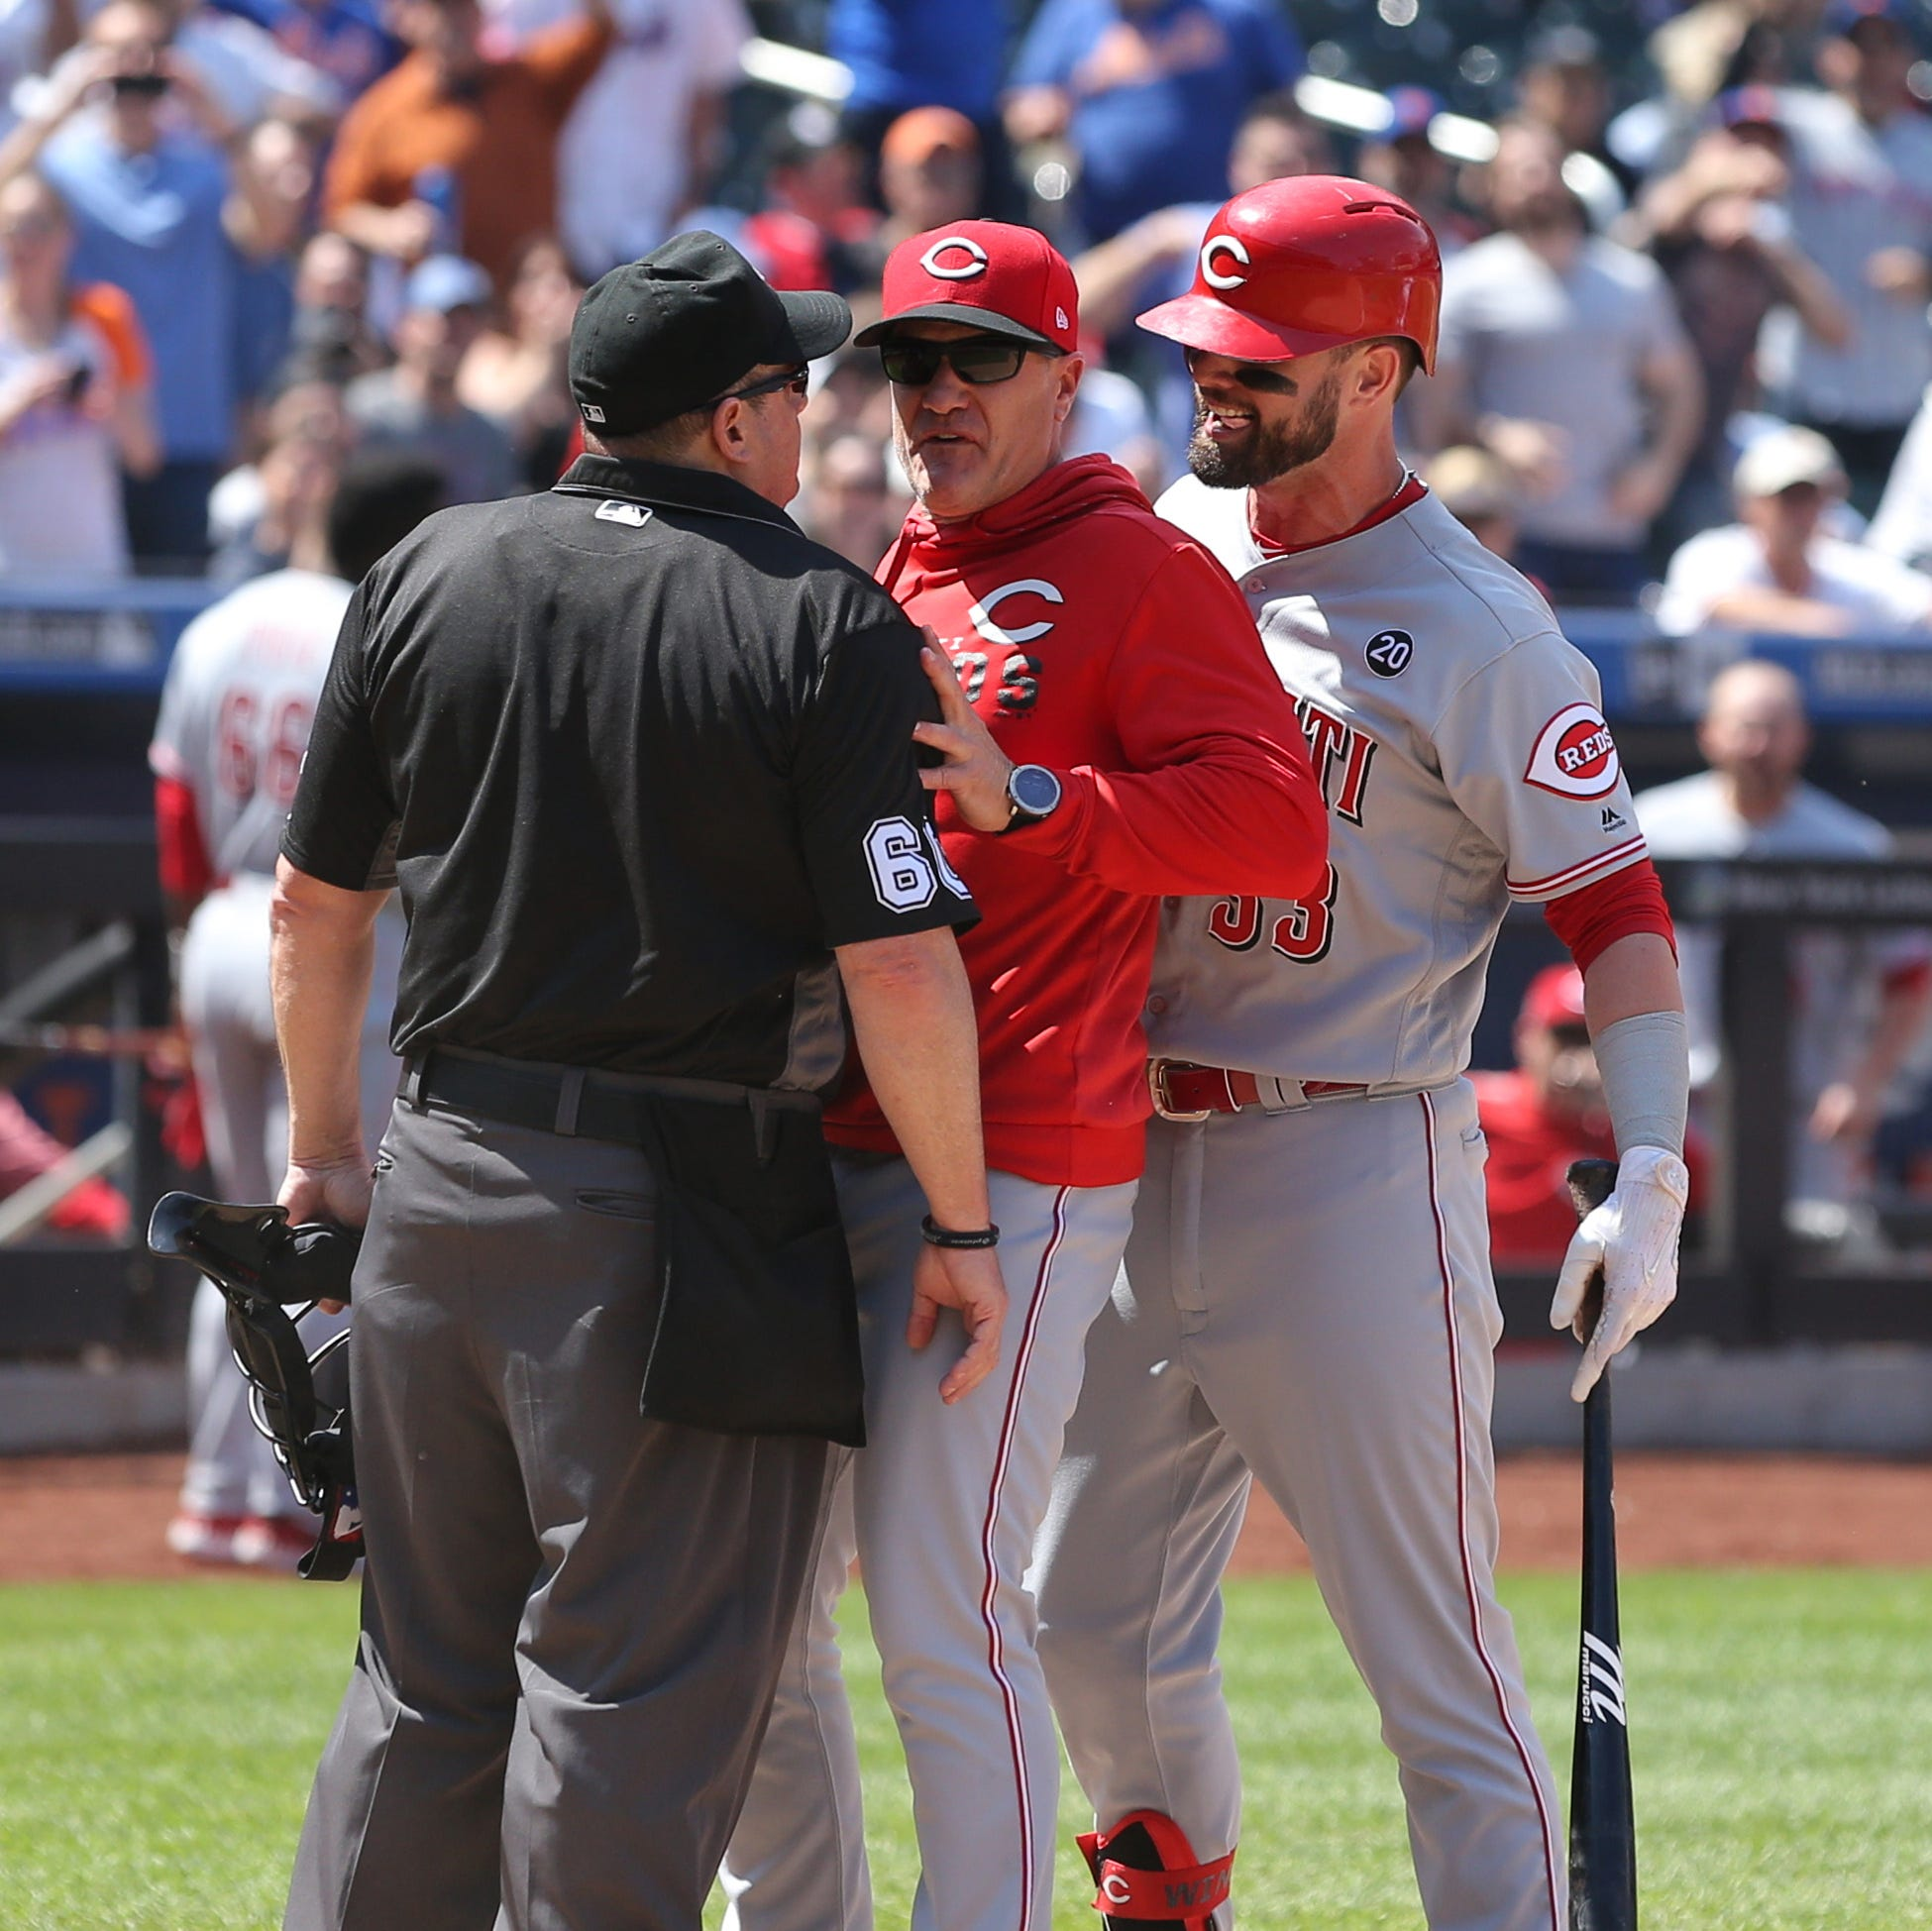 Jesse Winker and David Bell ejected during Cincinnati Reds' 1-0 loss to New York Mets